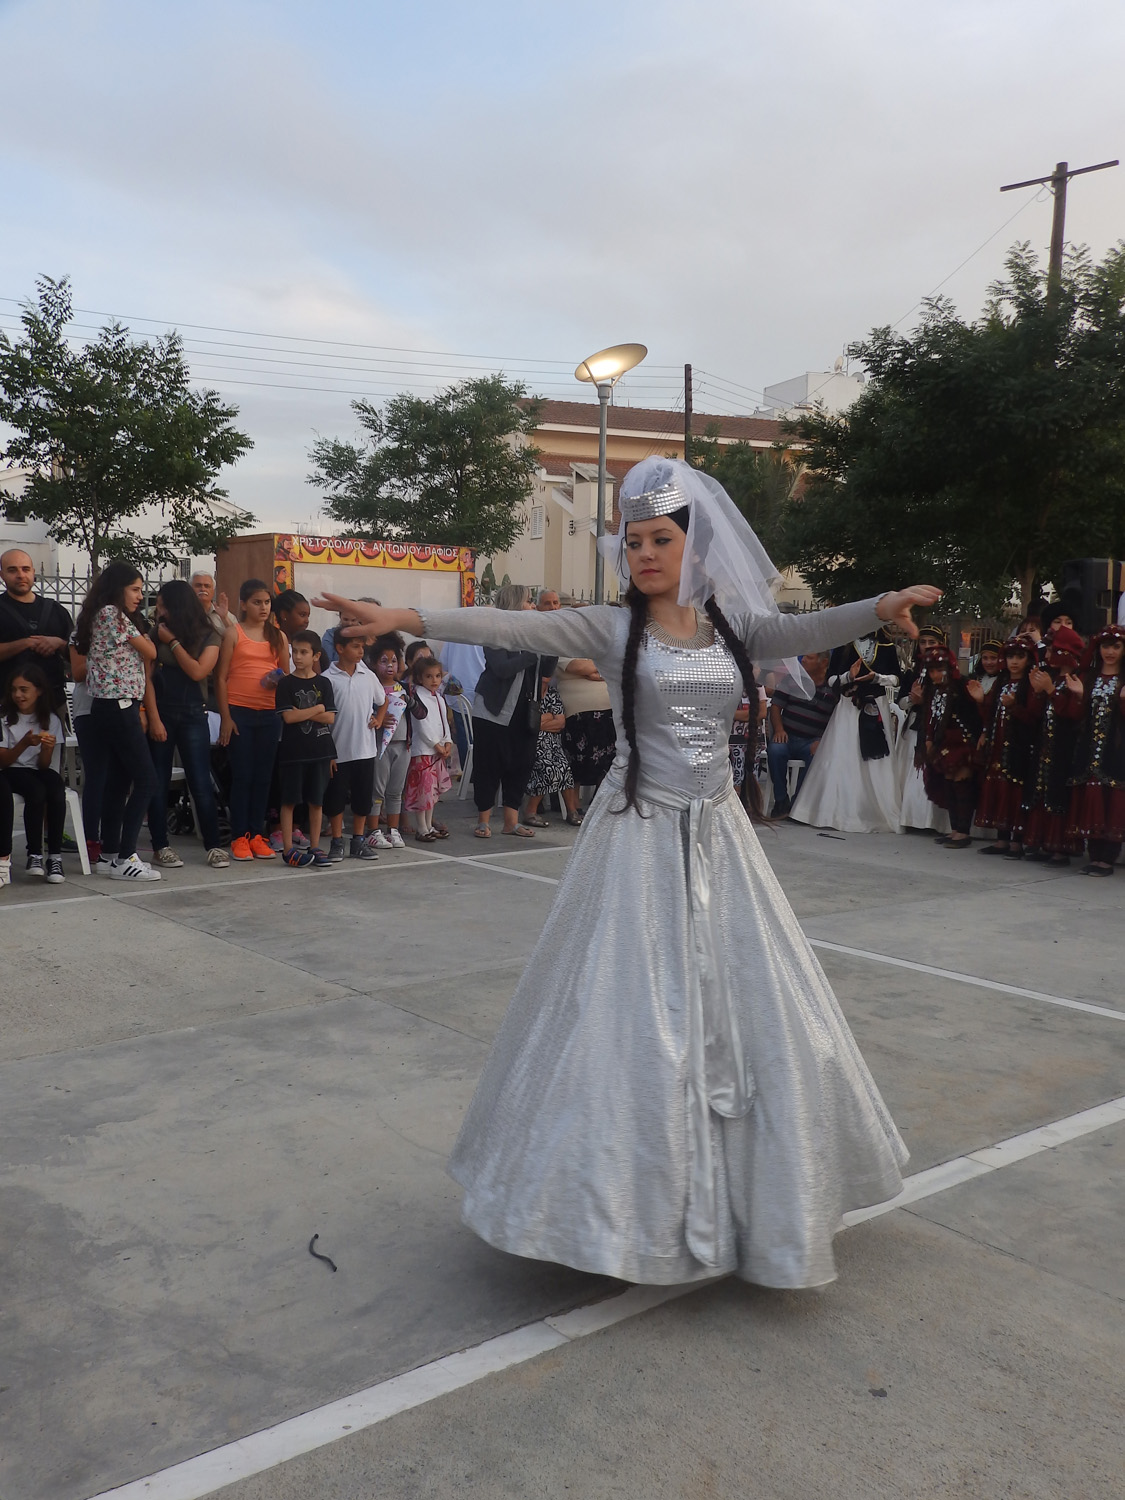 multicultural_Childrens_Festival_Ayios_Dhometios28516_25